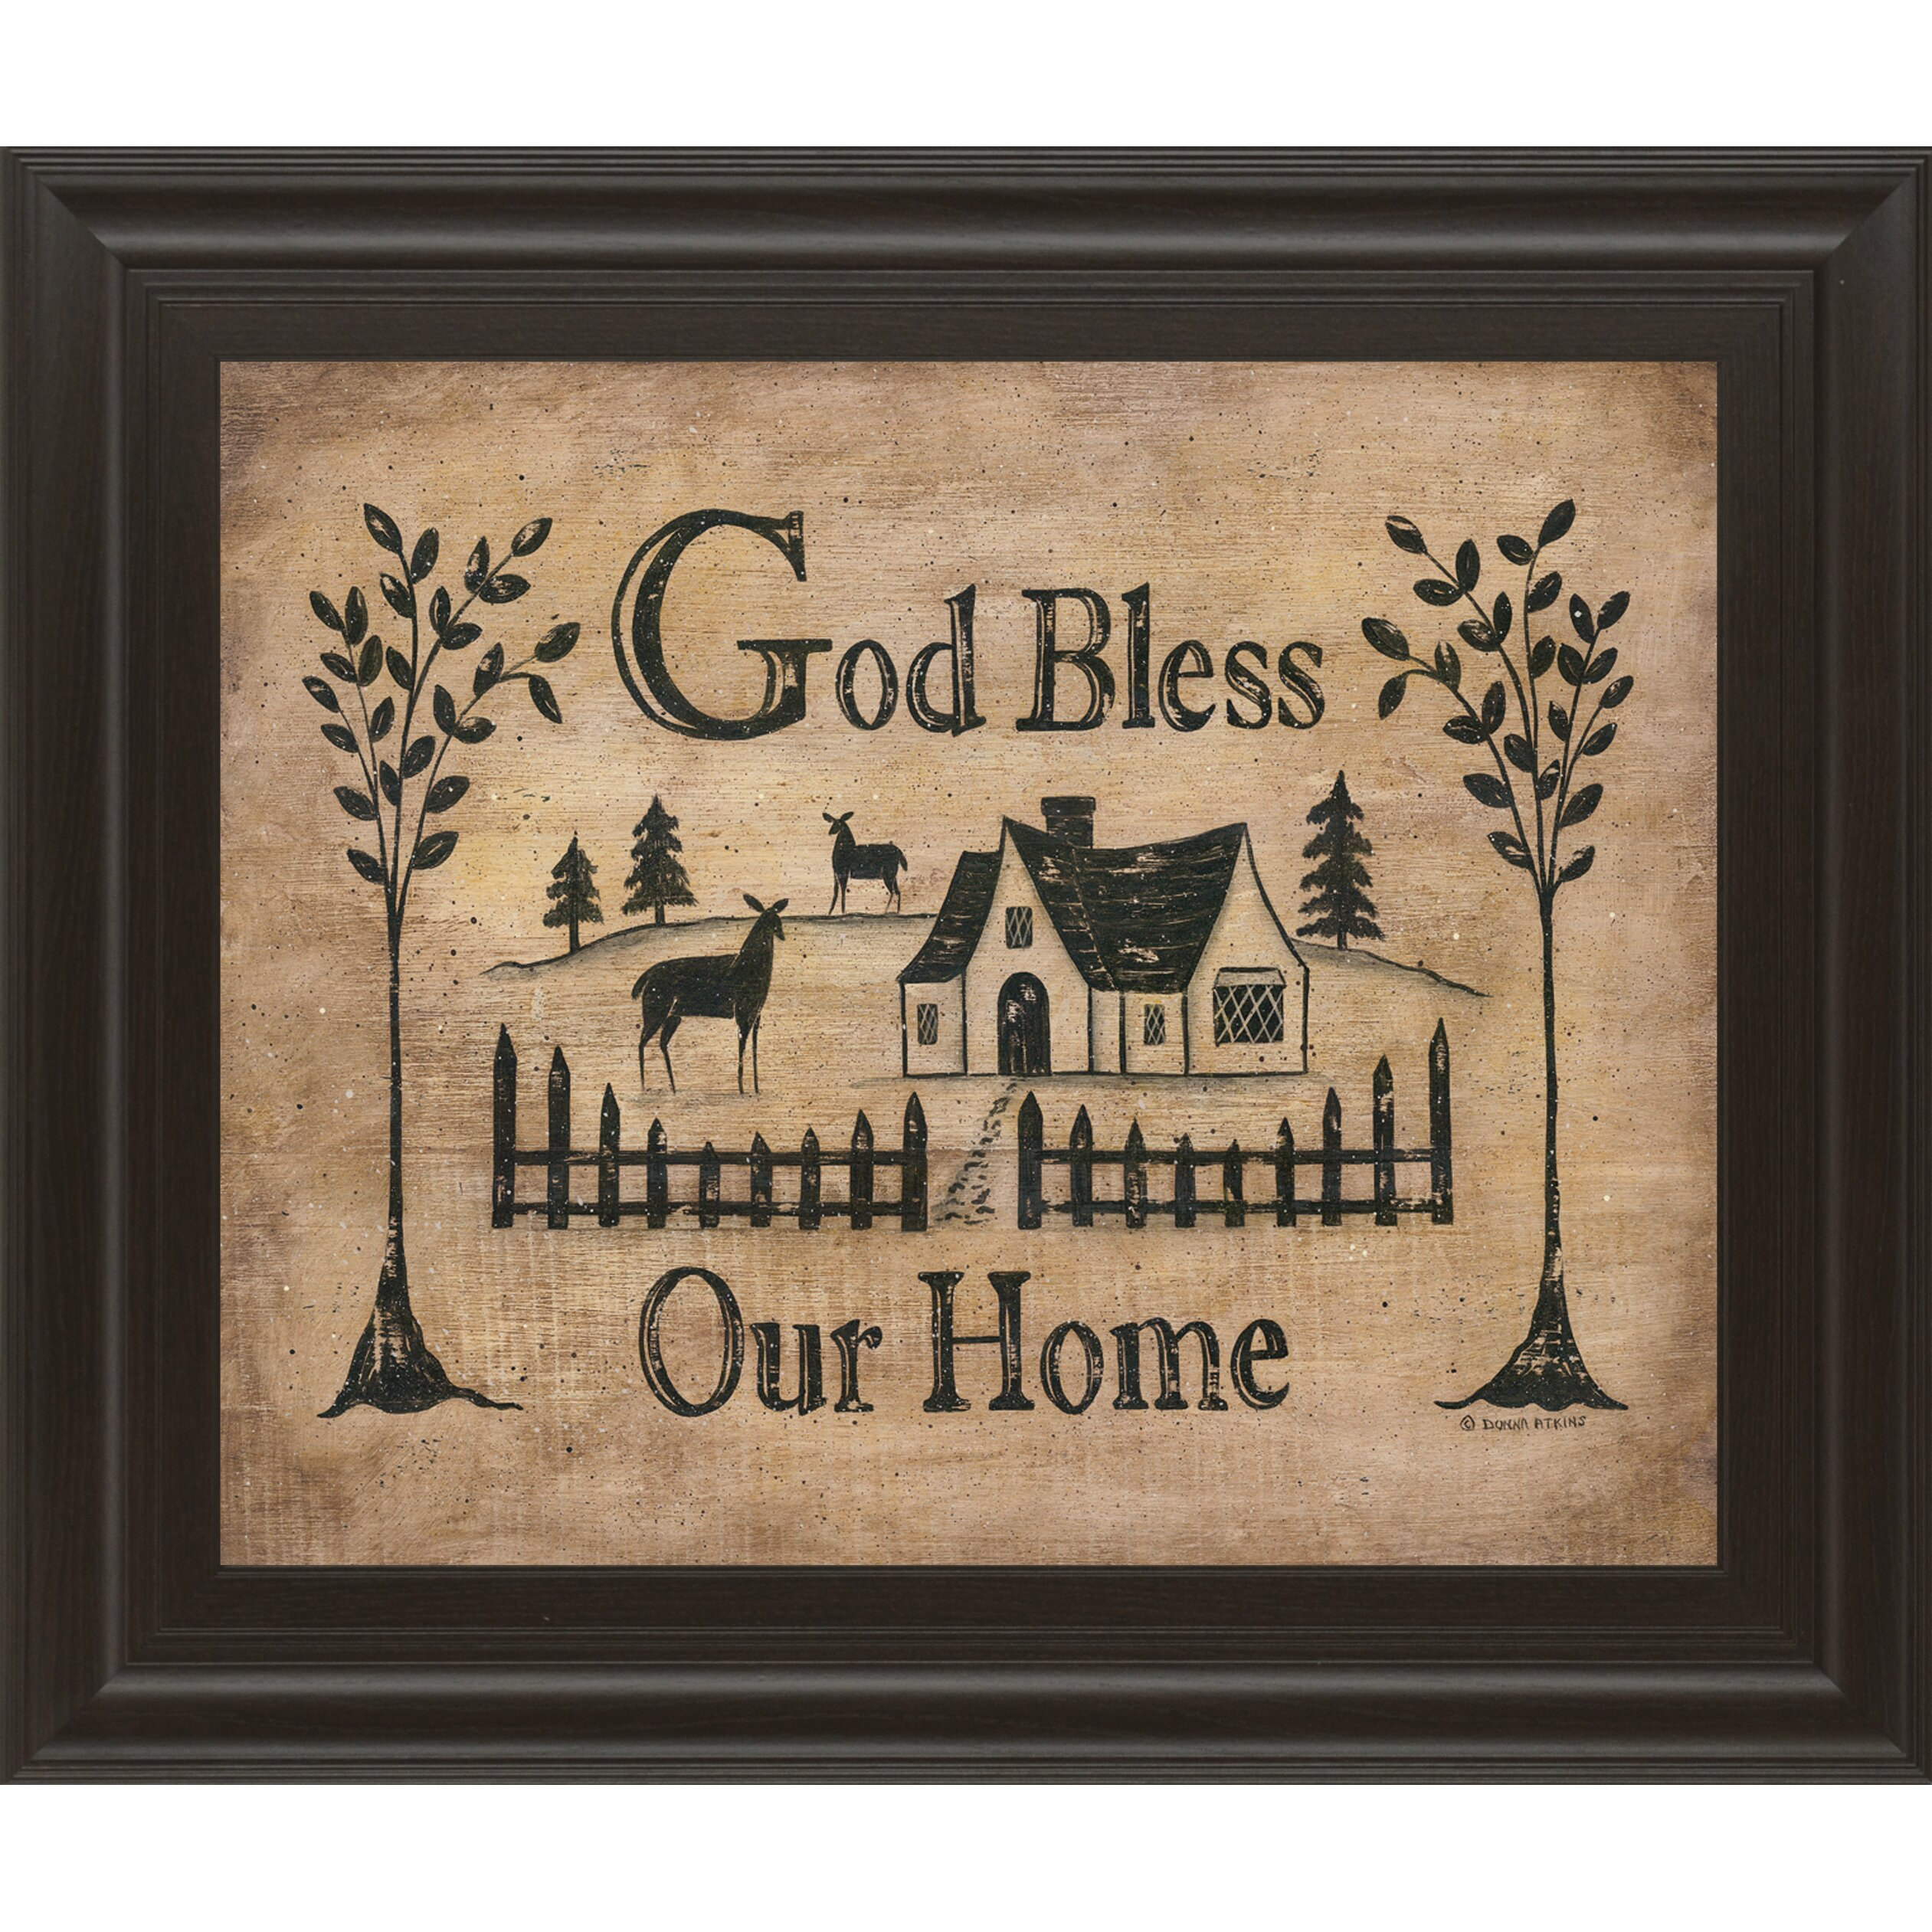 god bless our home wall decor god bless our home quote. Black Bedroom Furniture Sets. Home Design Ideas